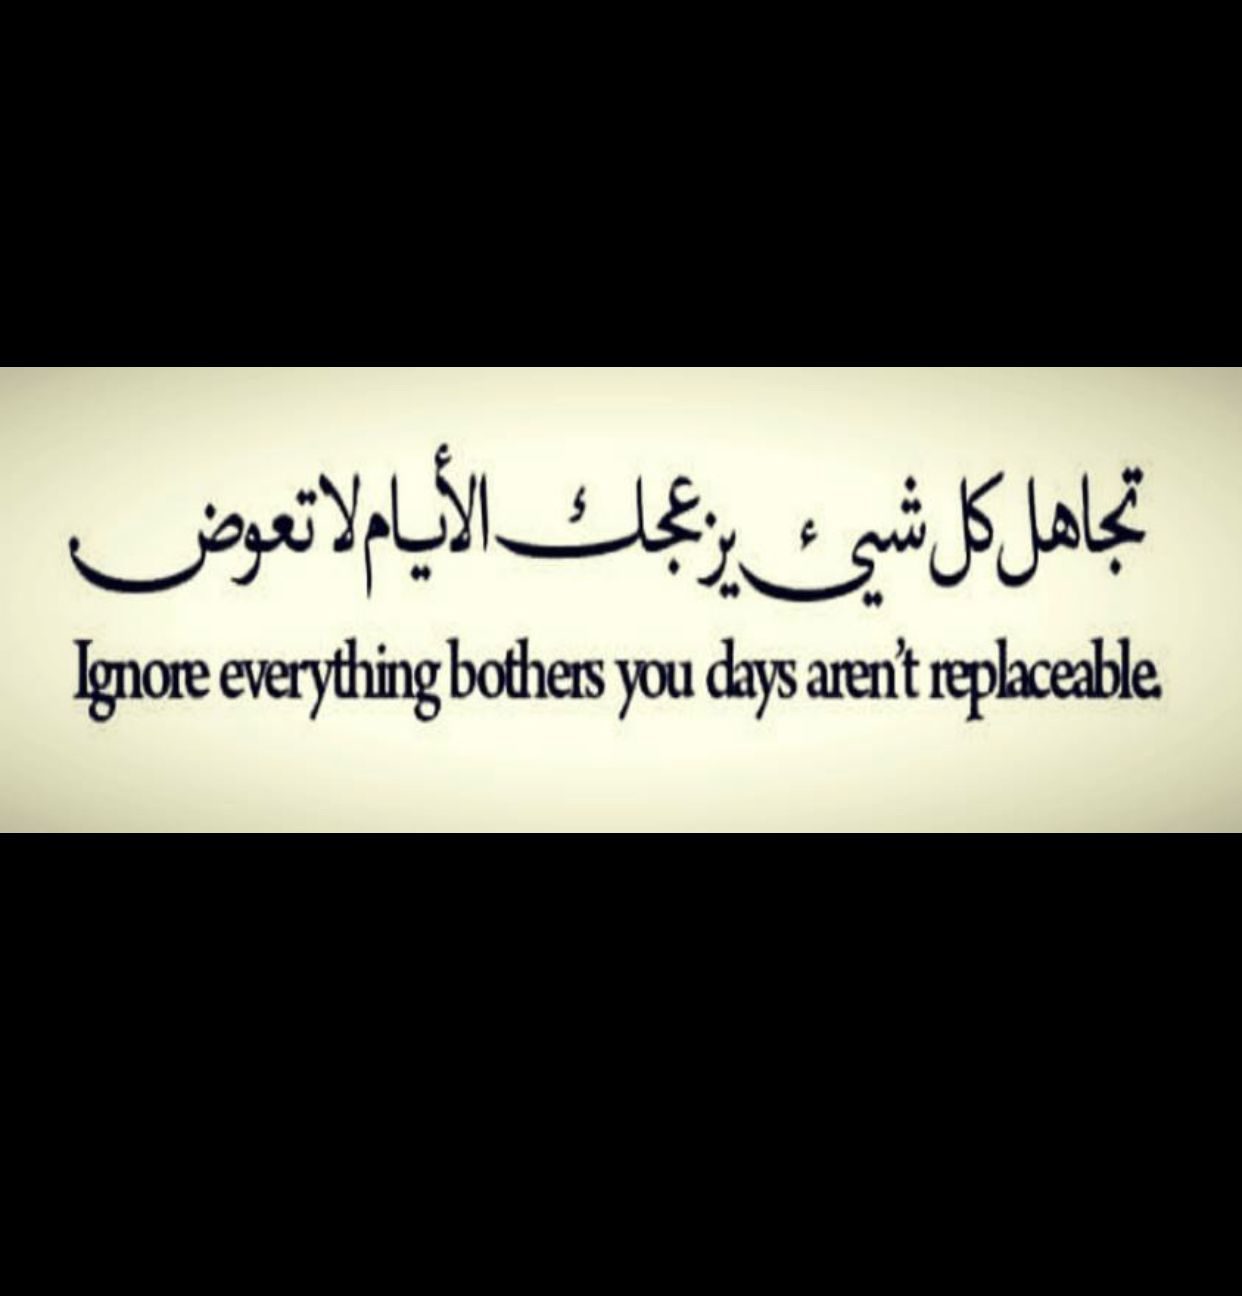 Pin By Merna Assaf On Kitabat Words Calligraphy Ignore Day